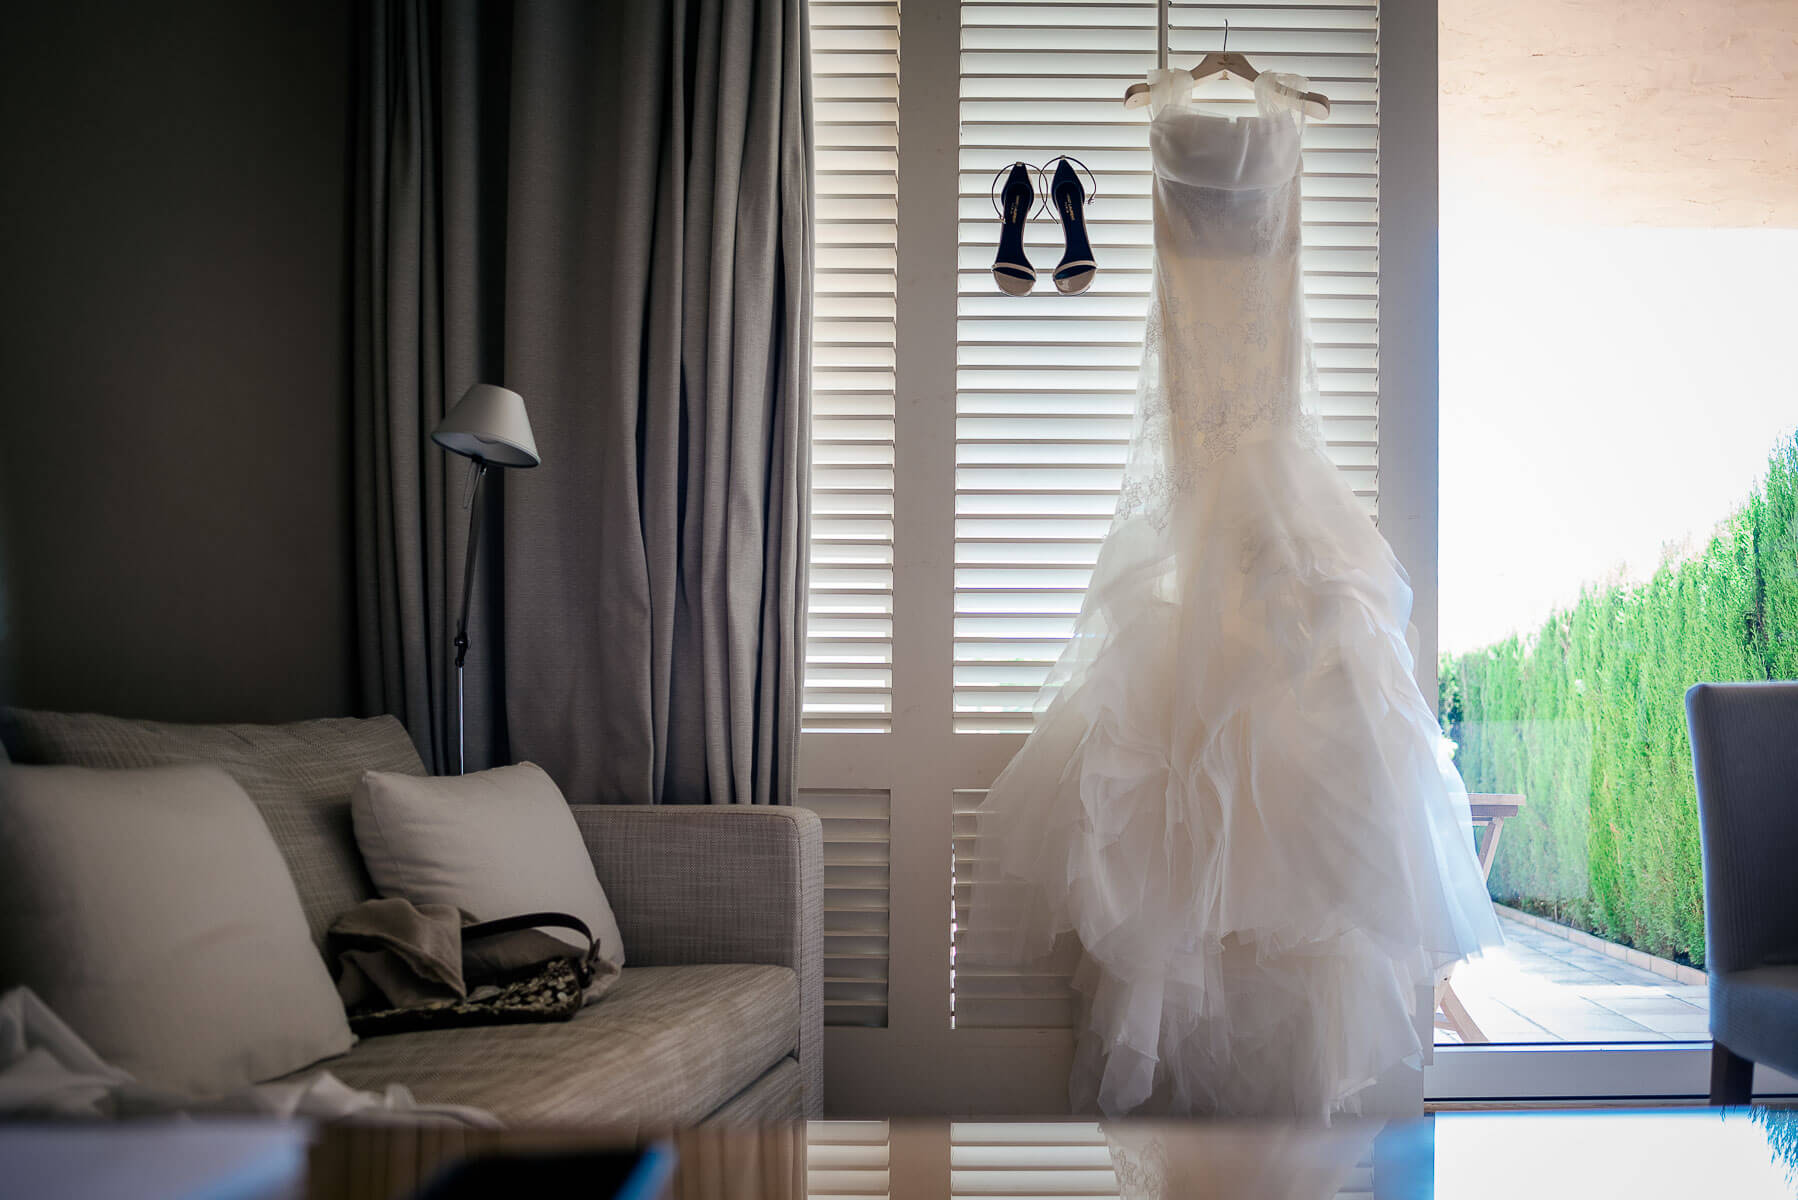 Boda Nuria & David vestido novia foto | Manel Tamayo wedding photographer